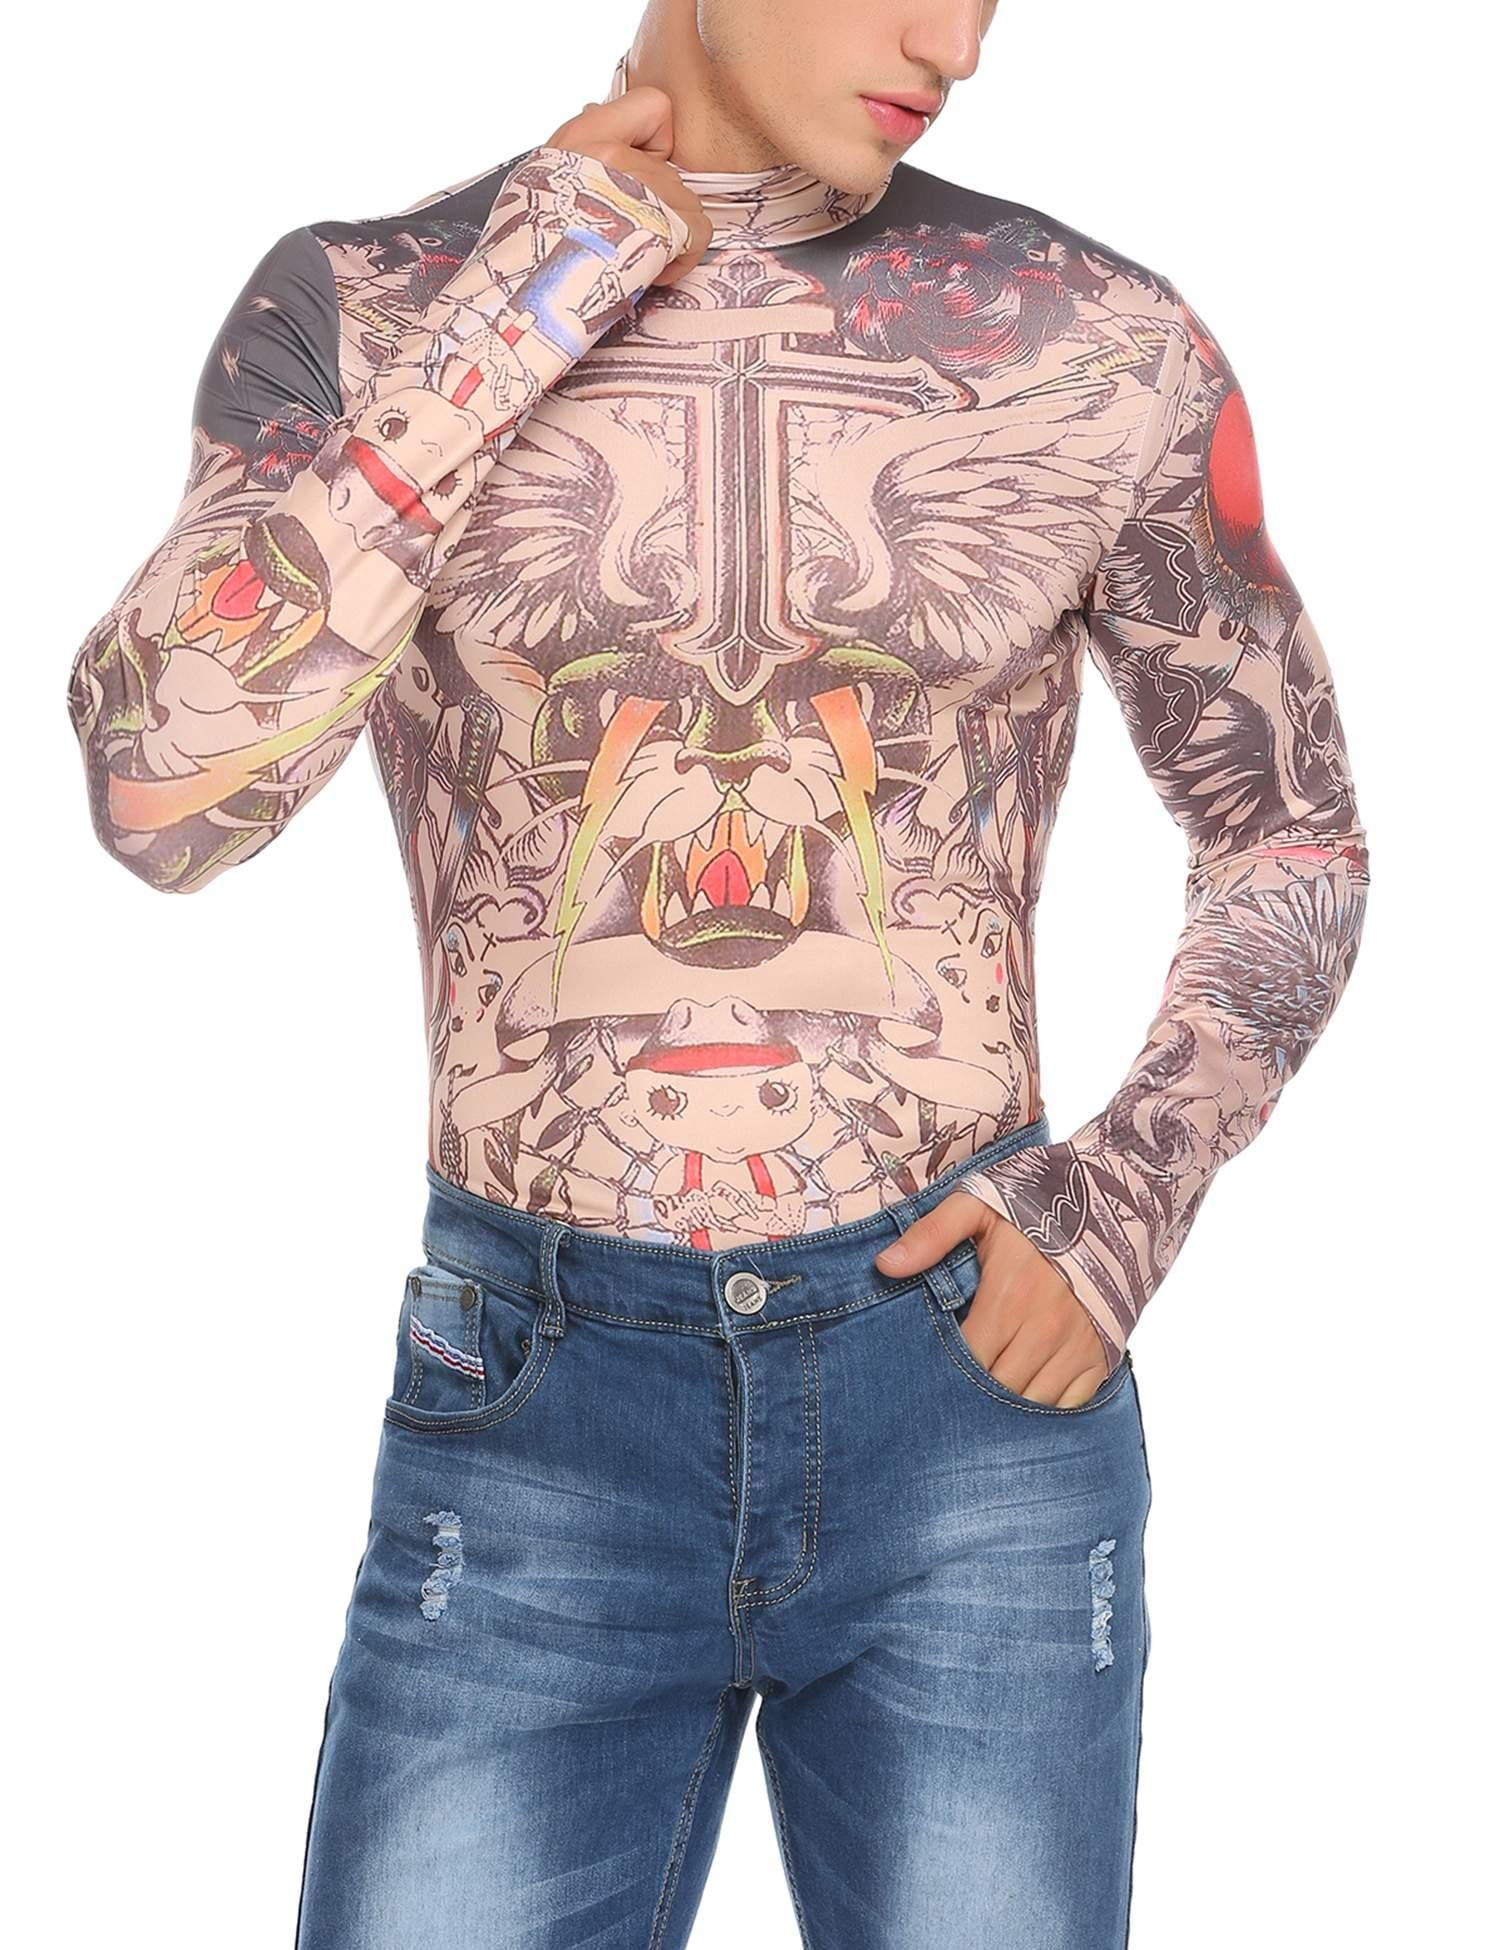 Goodfans Men's Fake Tattoo Tribal Inspired Print Elastic Long Sleeve T-Shirt Tops Clubwear by Goodfans (Image #3)